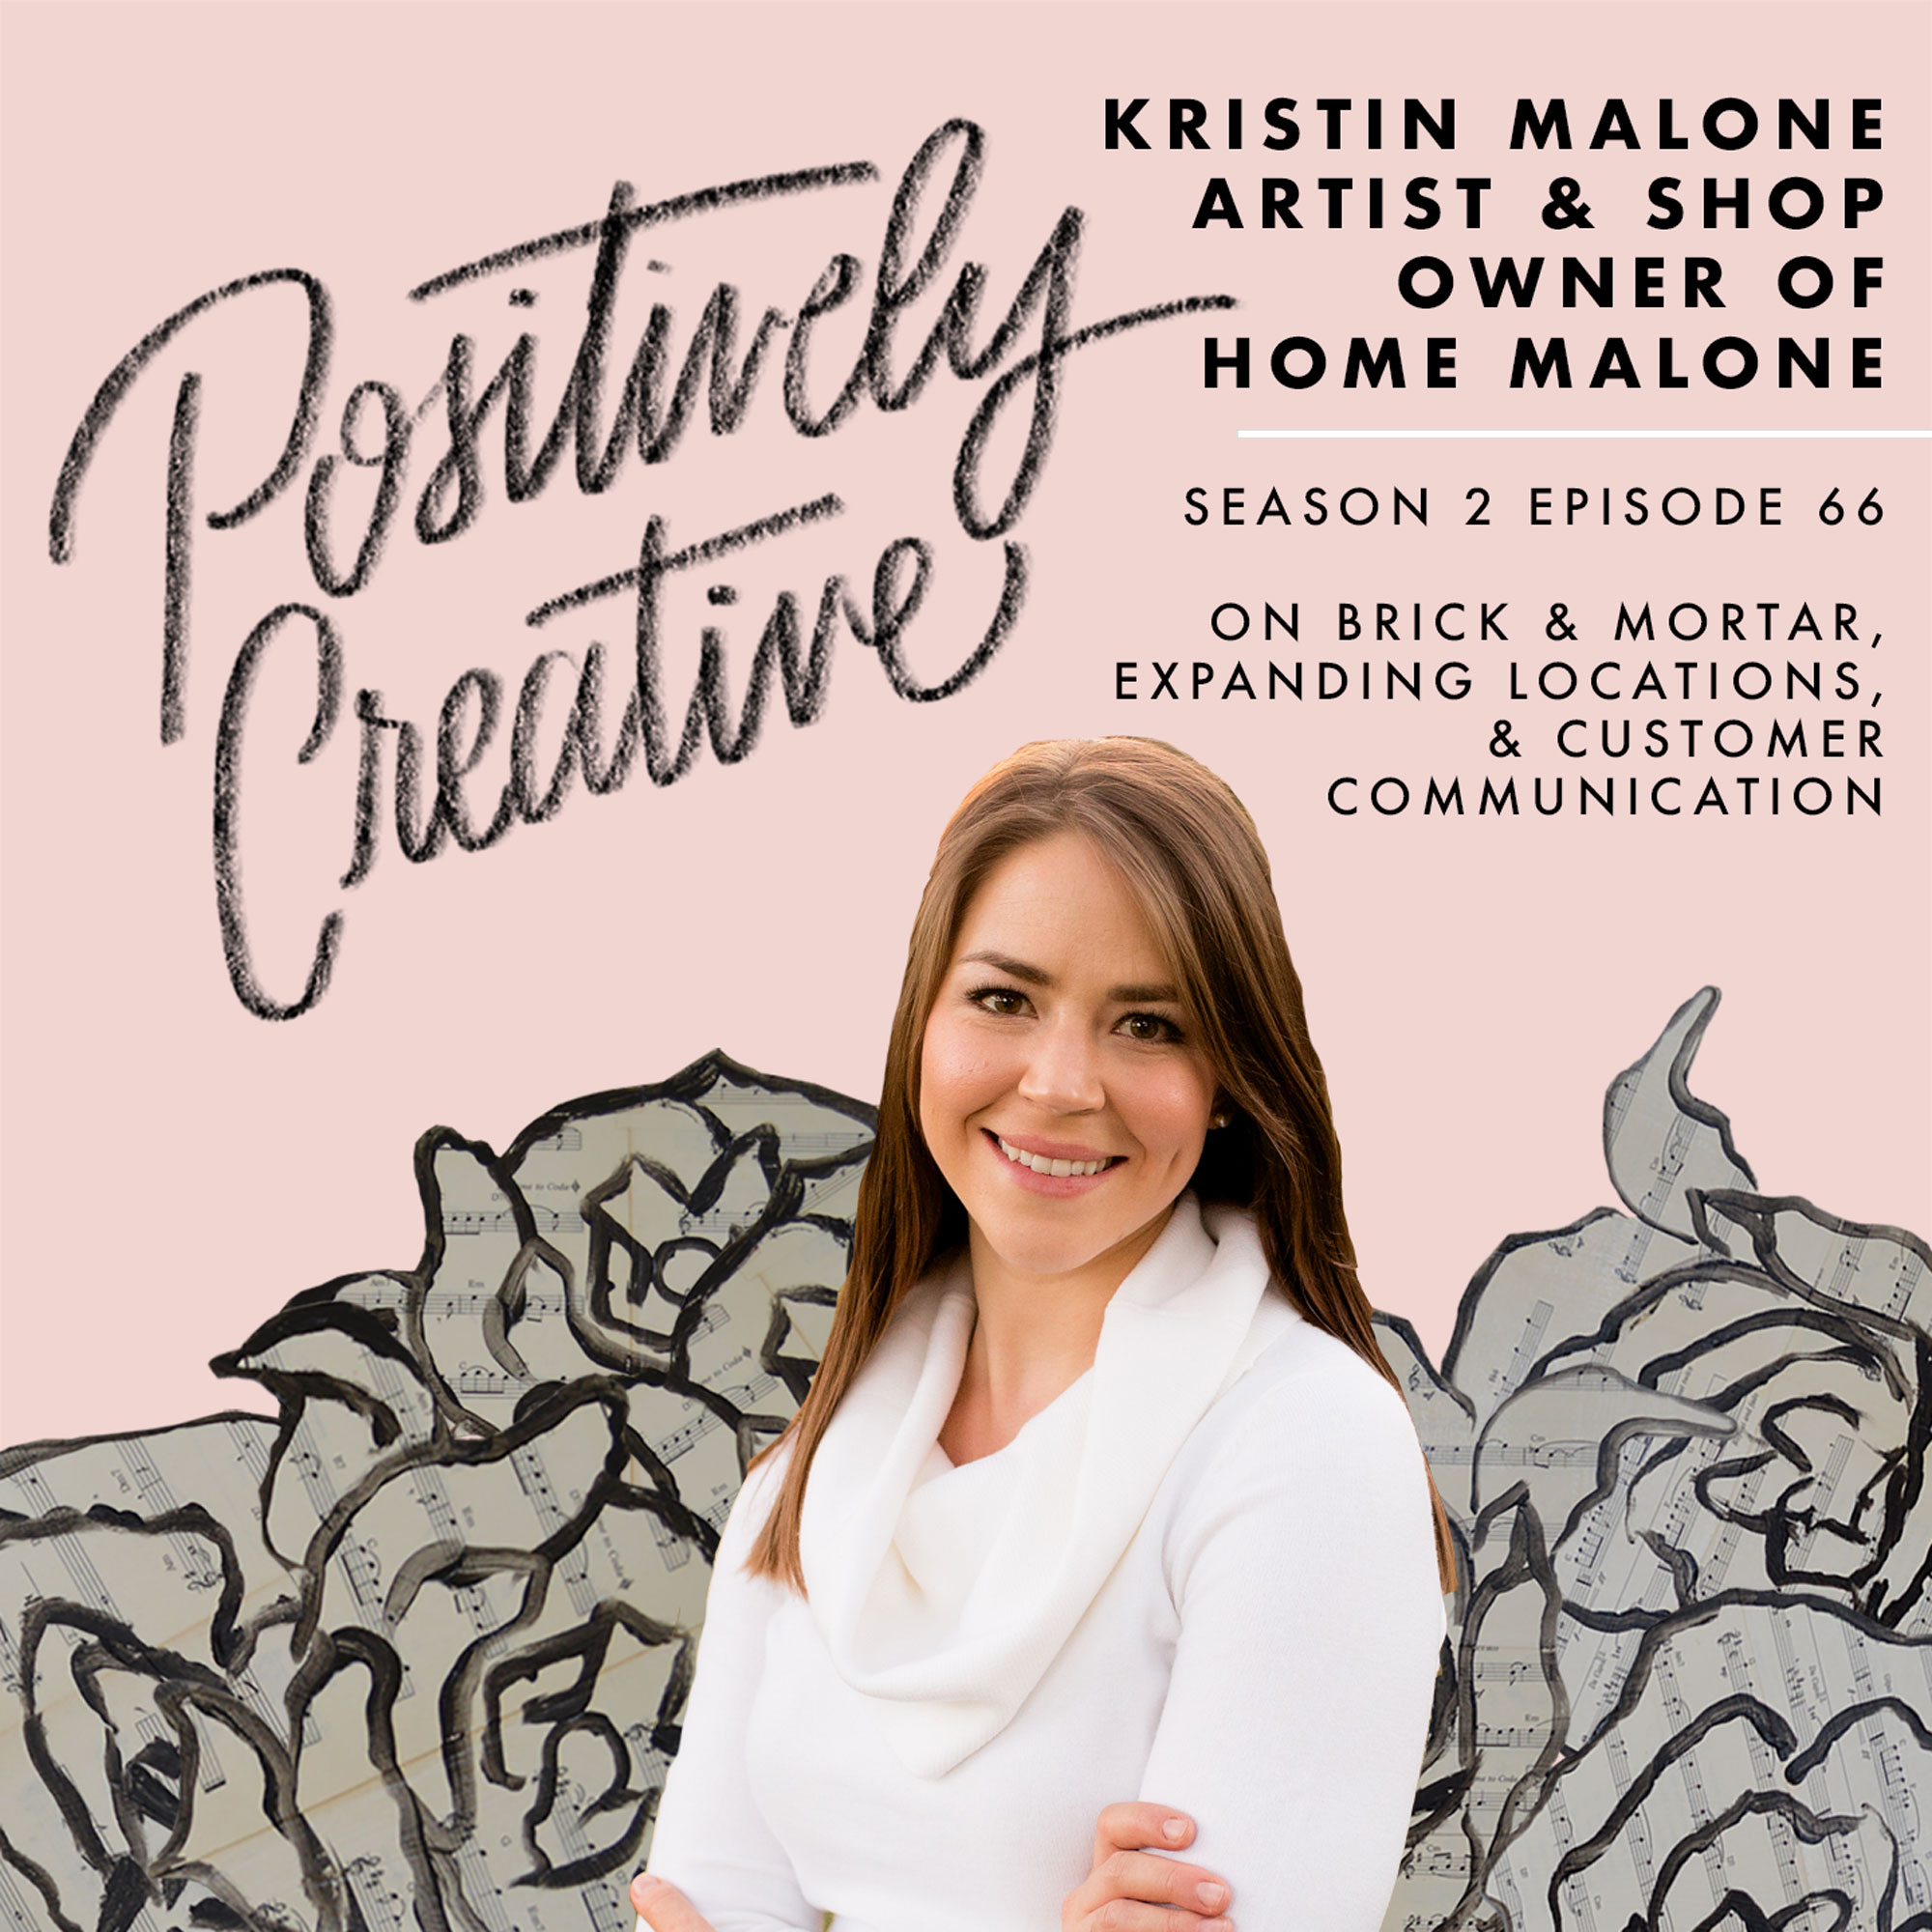 S2-Ep-66---Kristin-Malone,-Artist-&-Shop-Owner-of-Home-Malone-on-Brick-&-Mortar,-Expanding-Locations,-&-Customer-Communication.jpg